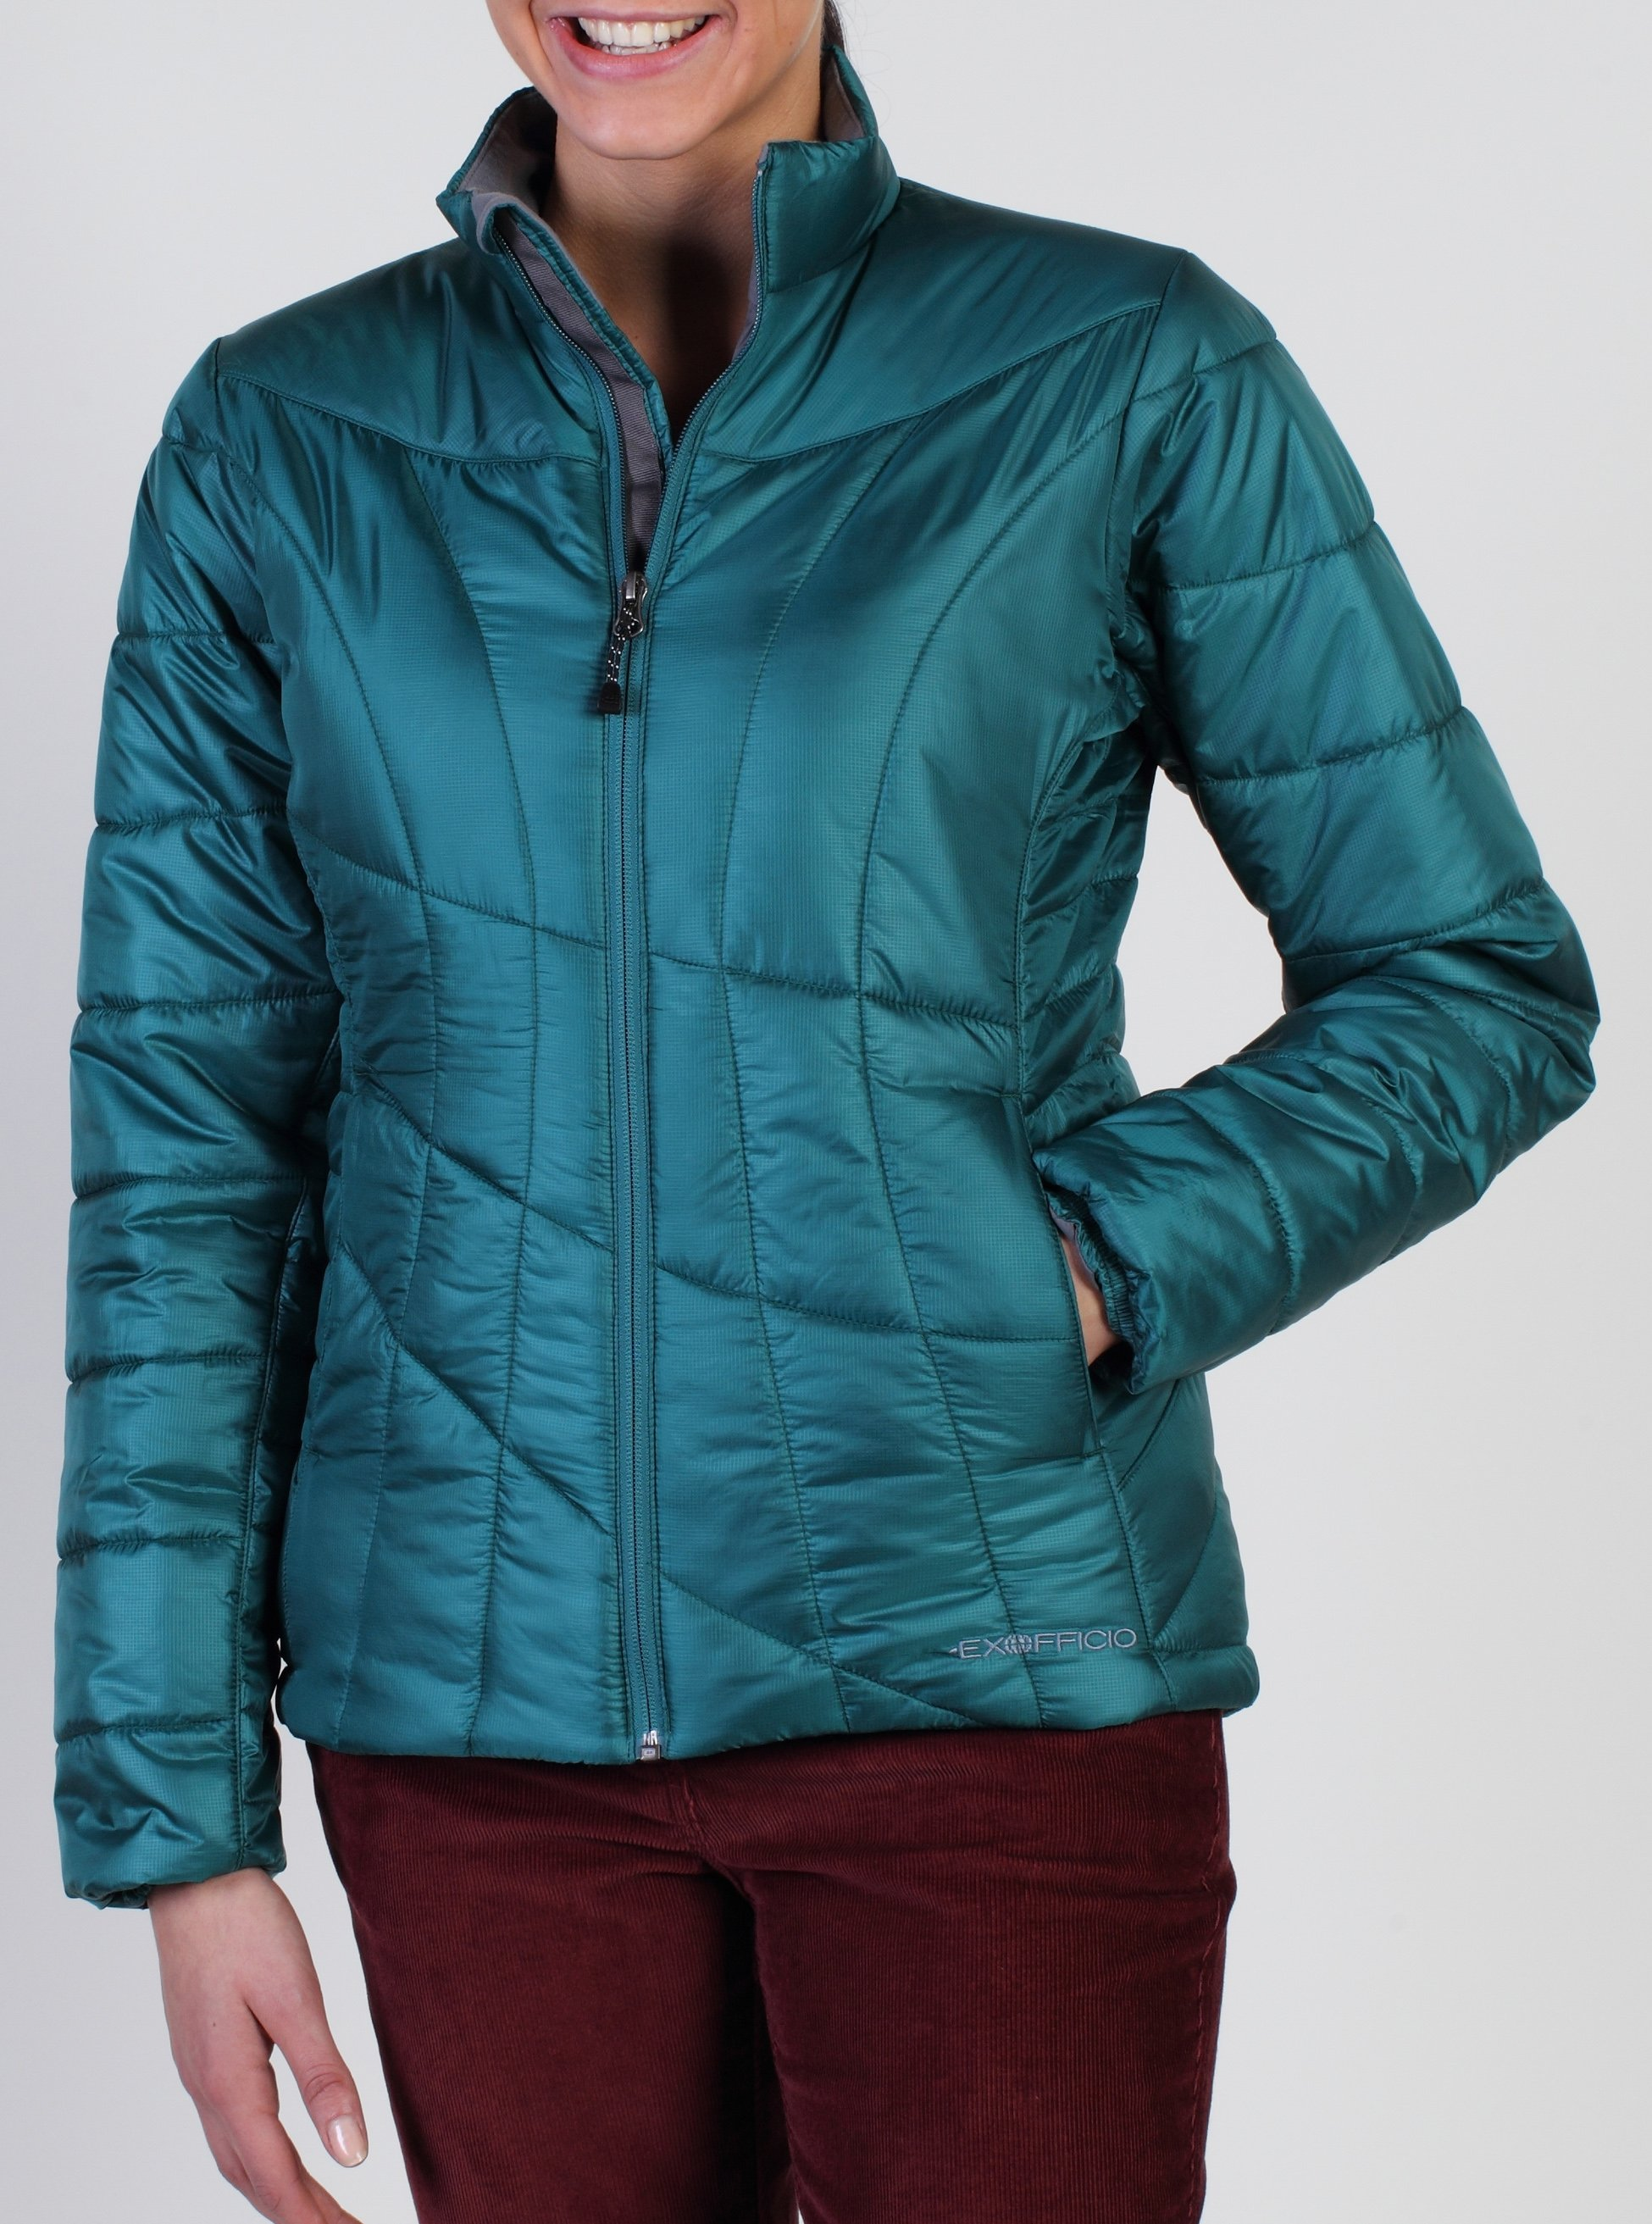 Women's Storm Logic Jacket